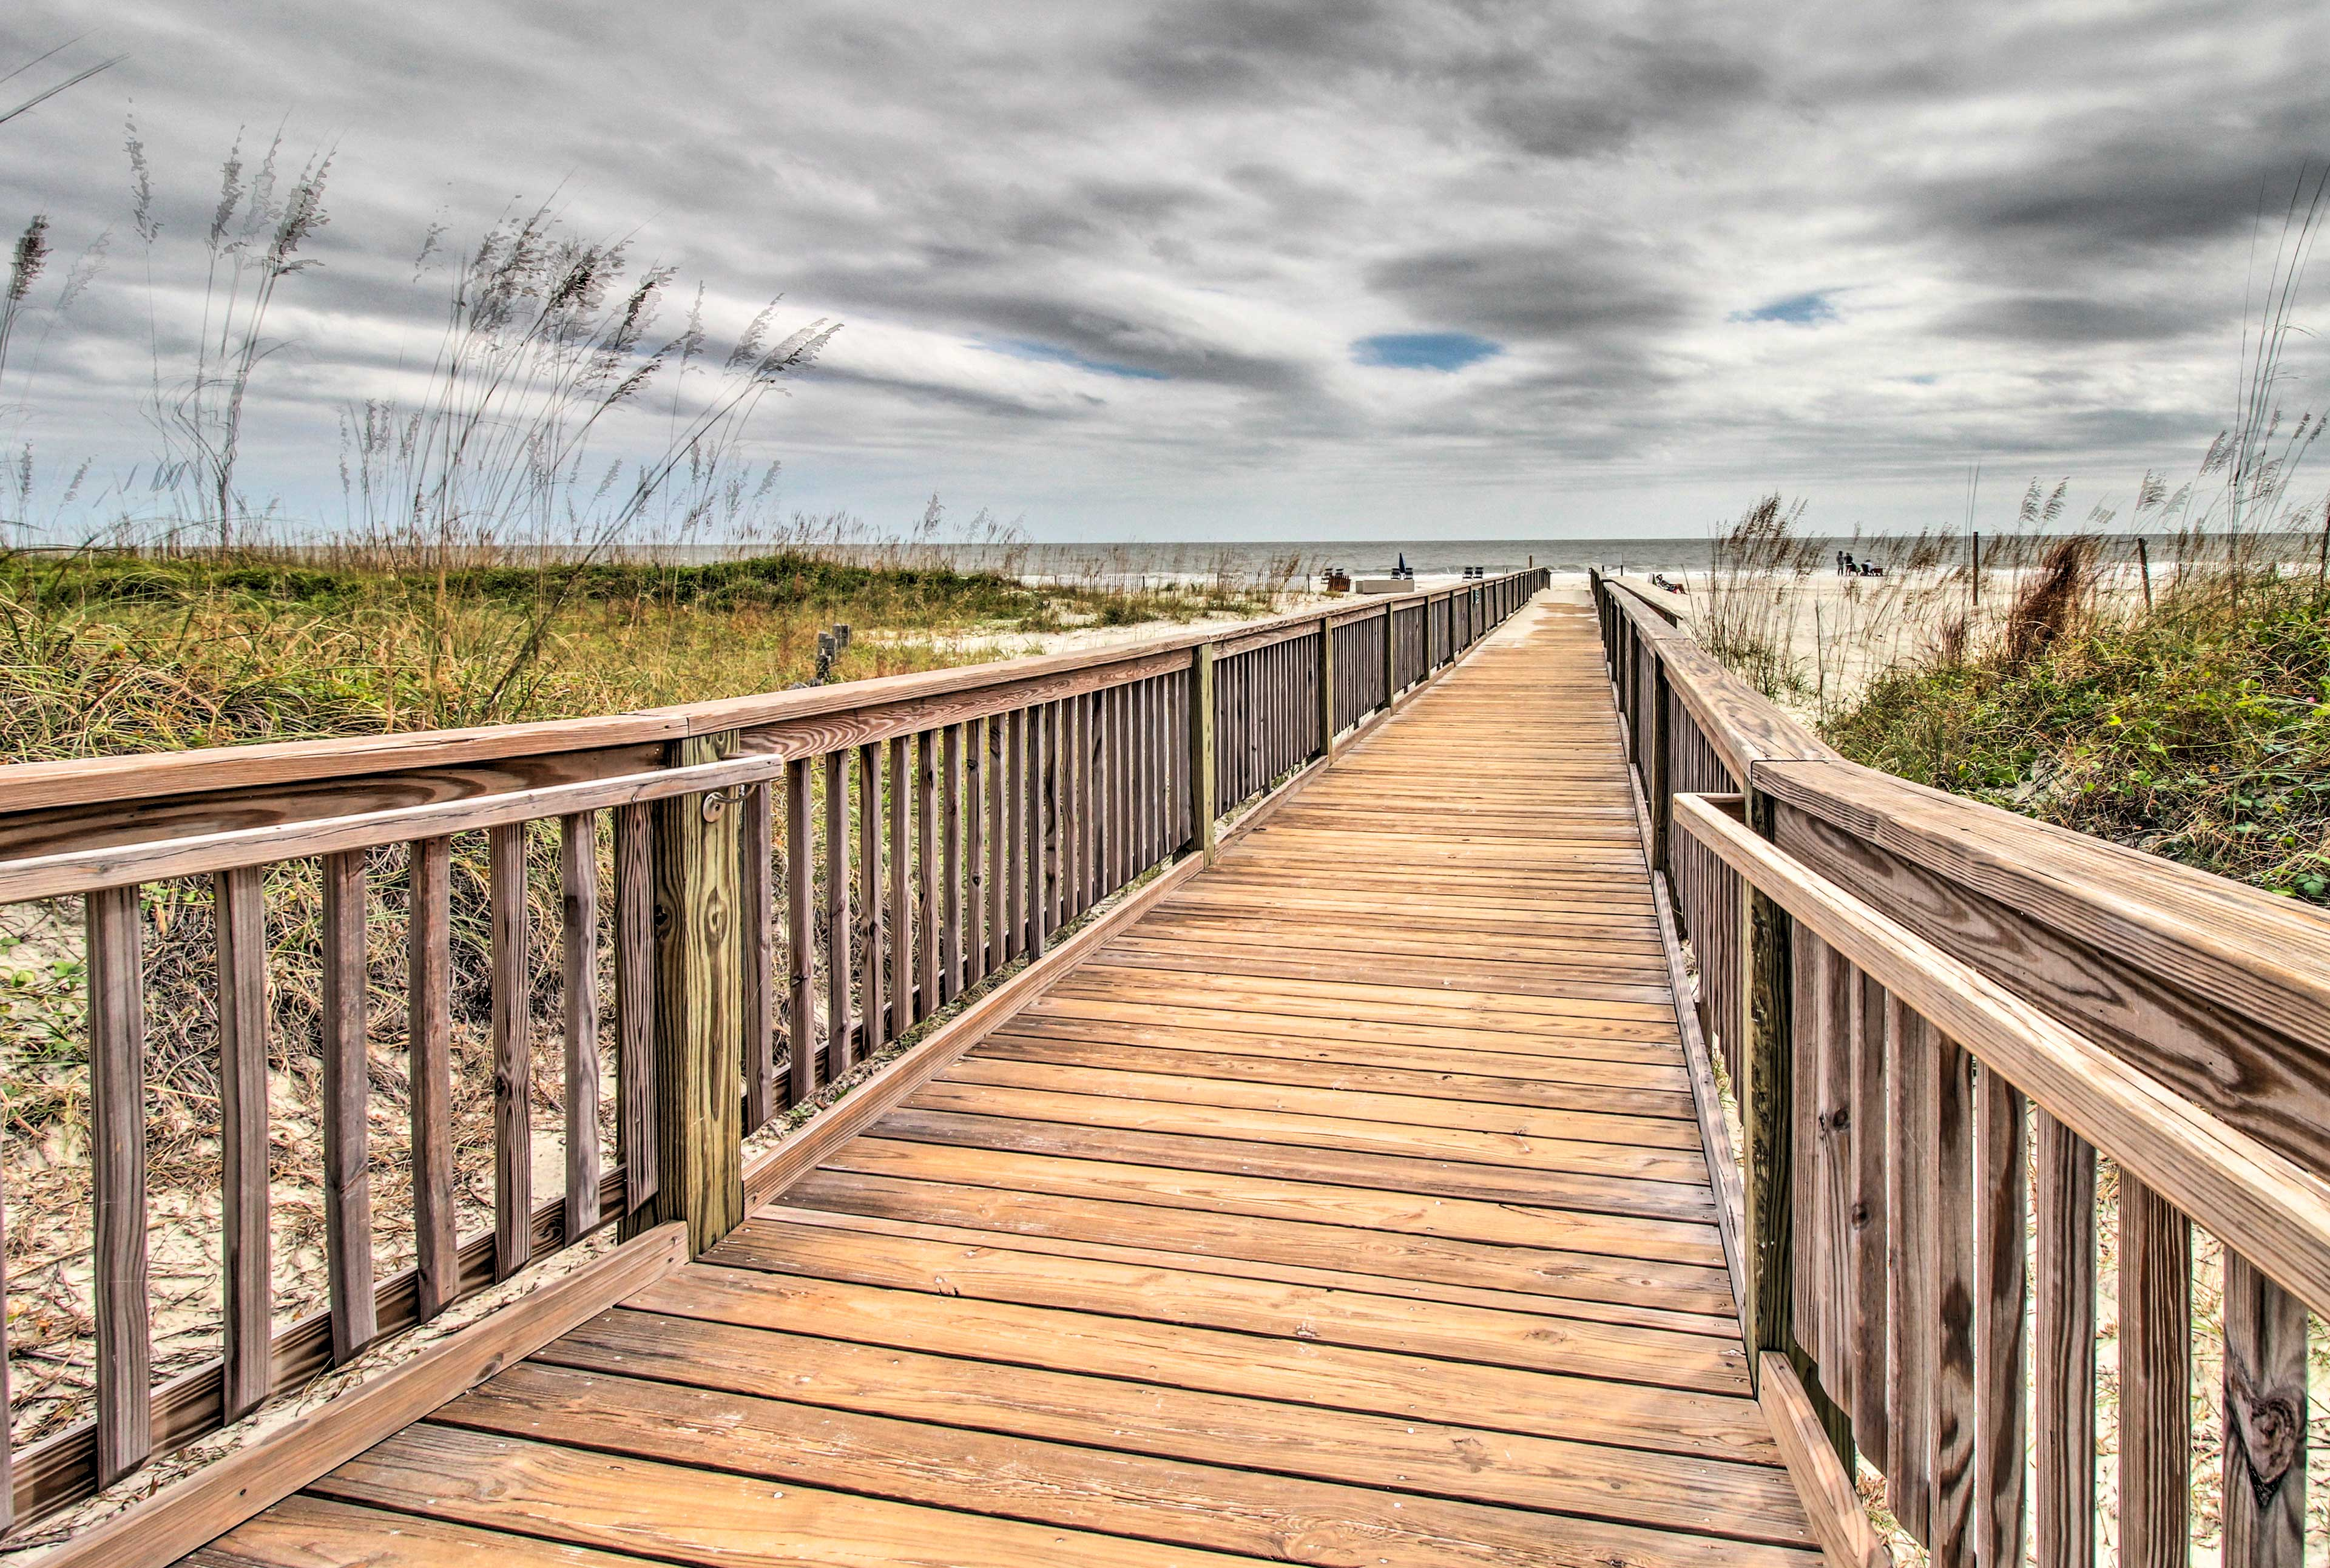 Easily access the beach from the private boardwalk!